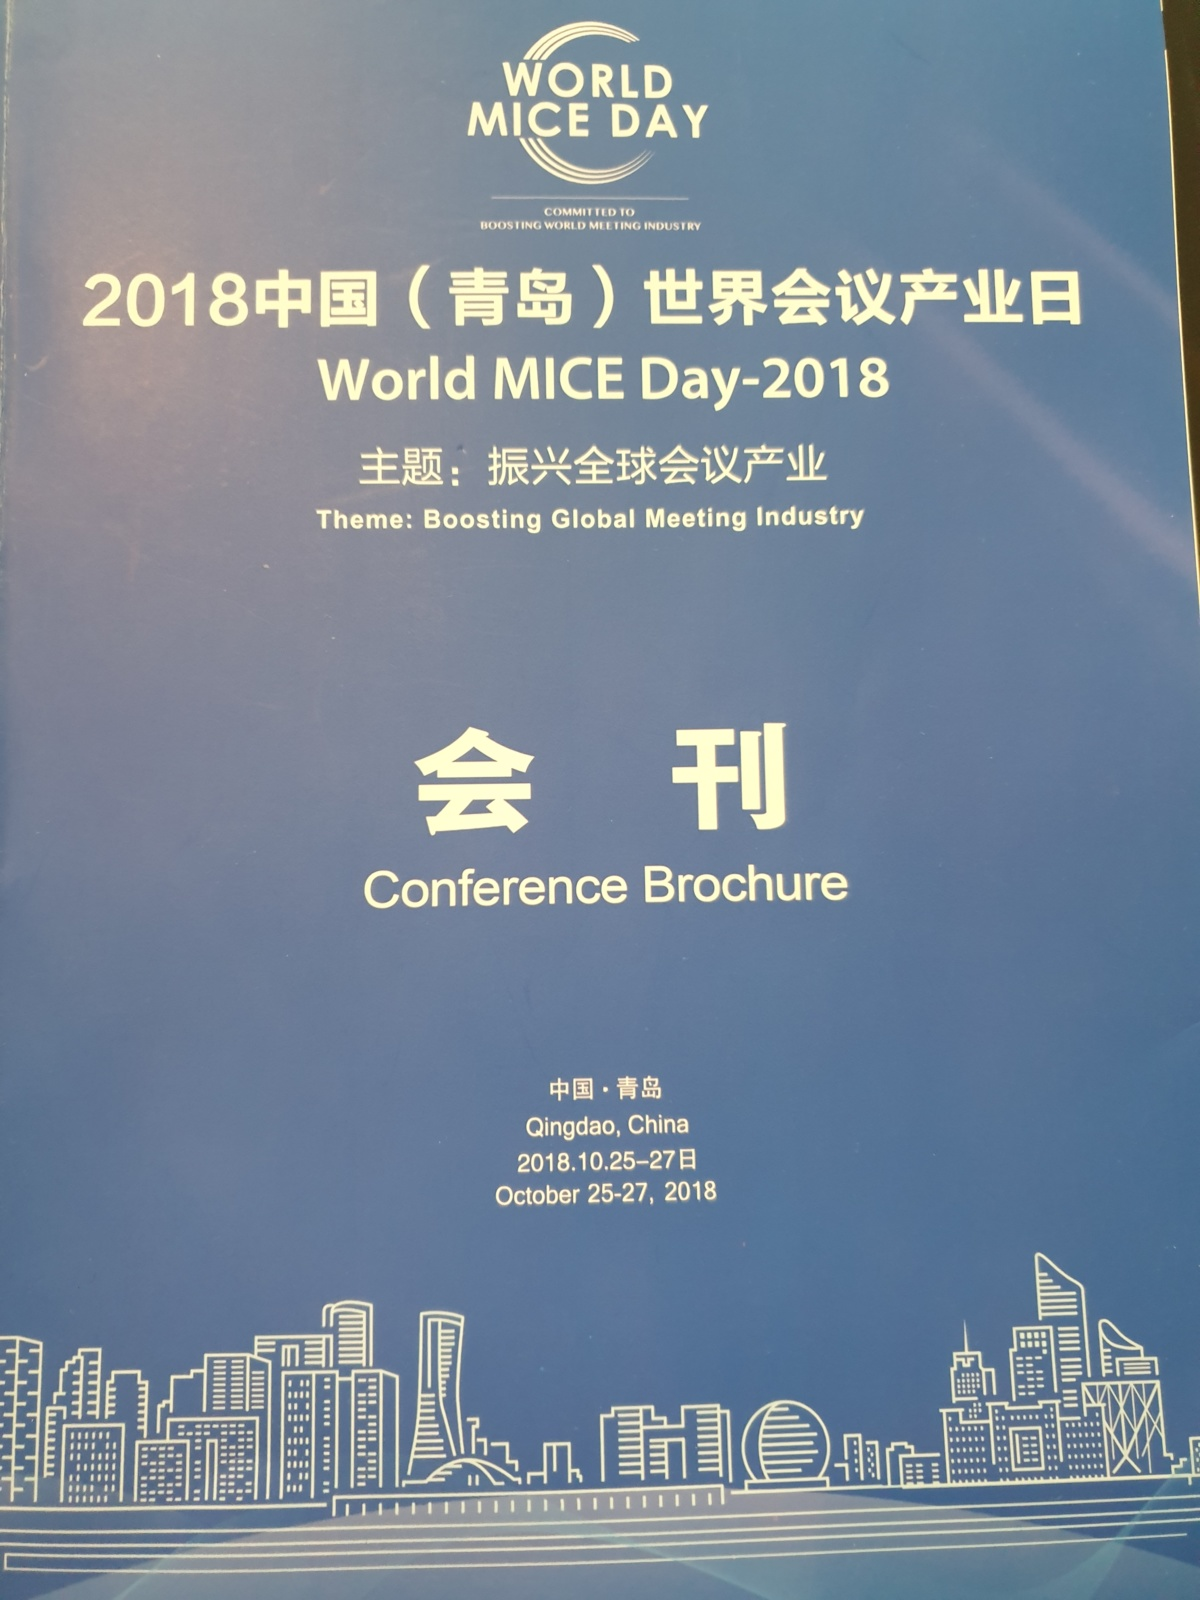 World MICE Day 2018 (1)